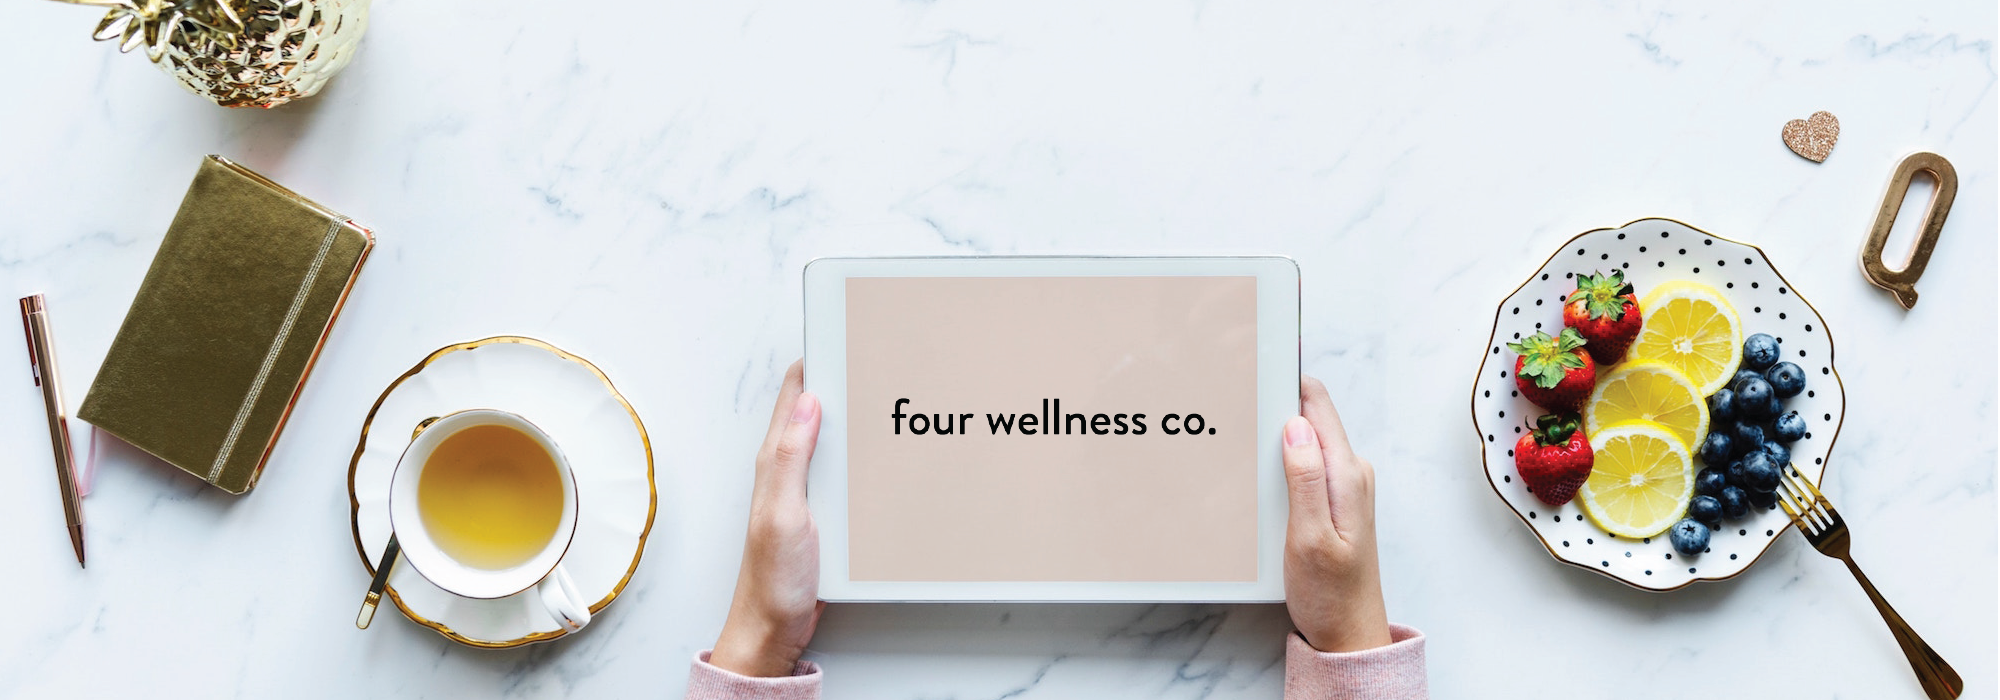 Health coaches are trained in using food and lifestyle as medicine. Learn more at fourwellness.co/blog/what-is-health-coaching